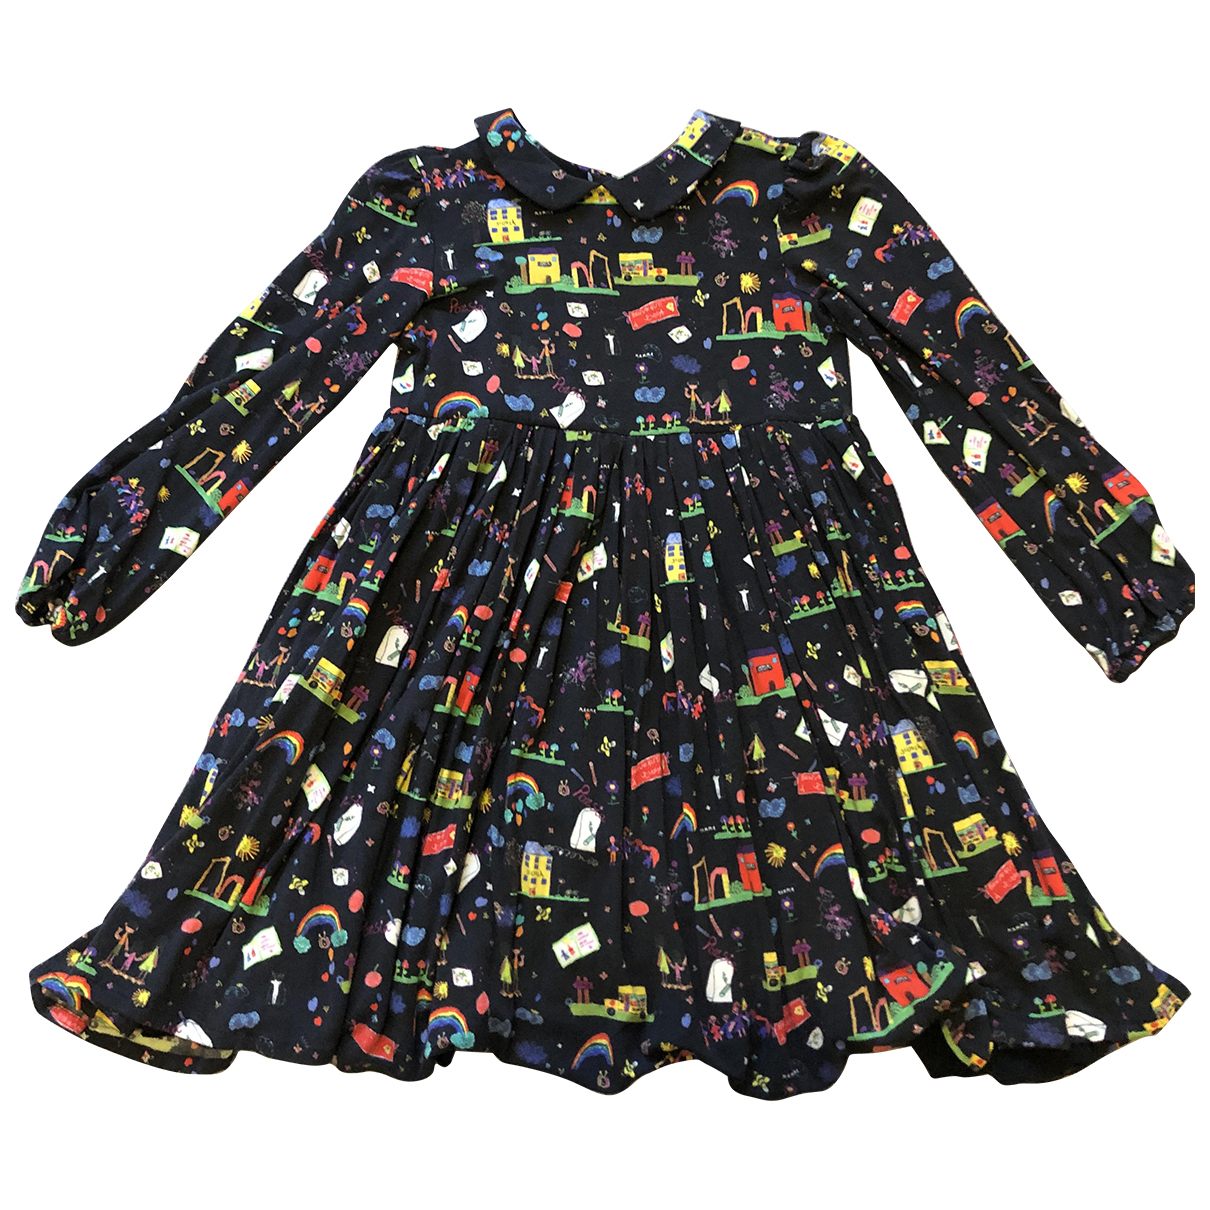 Dolce & Gabbana N Multicolour Cotton dress for Kids 5 years - up to 108cm FR